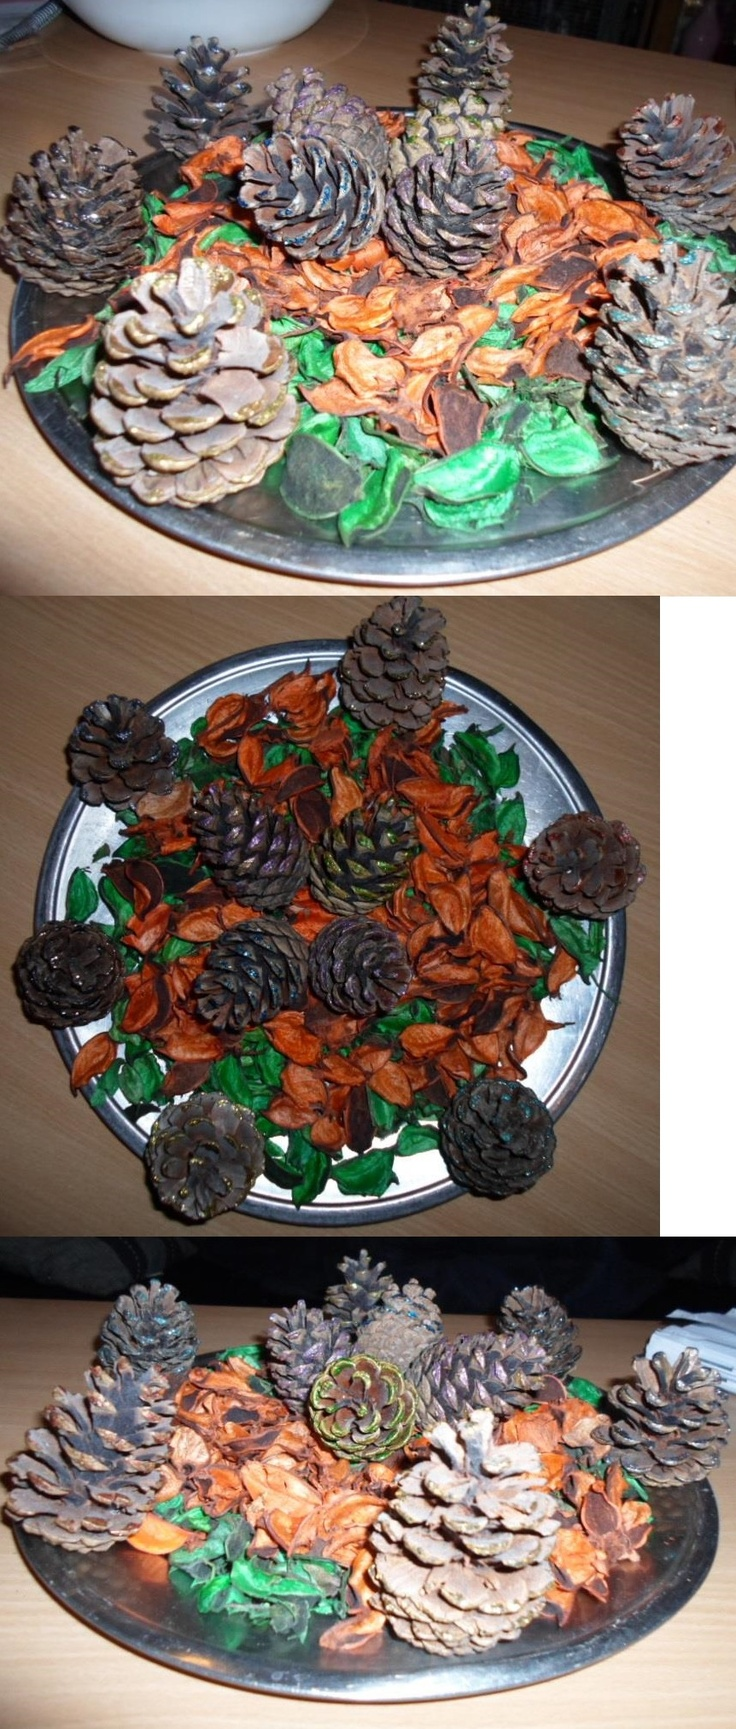 Decoration with pine cones and dried flower leafs.